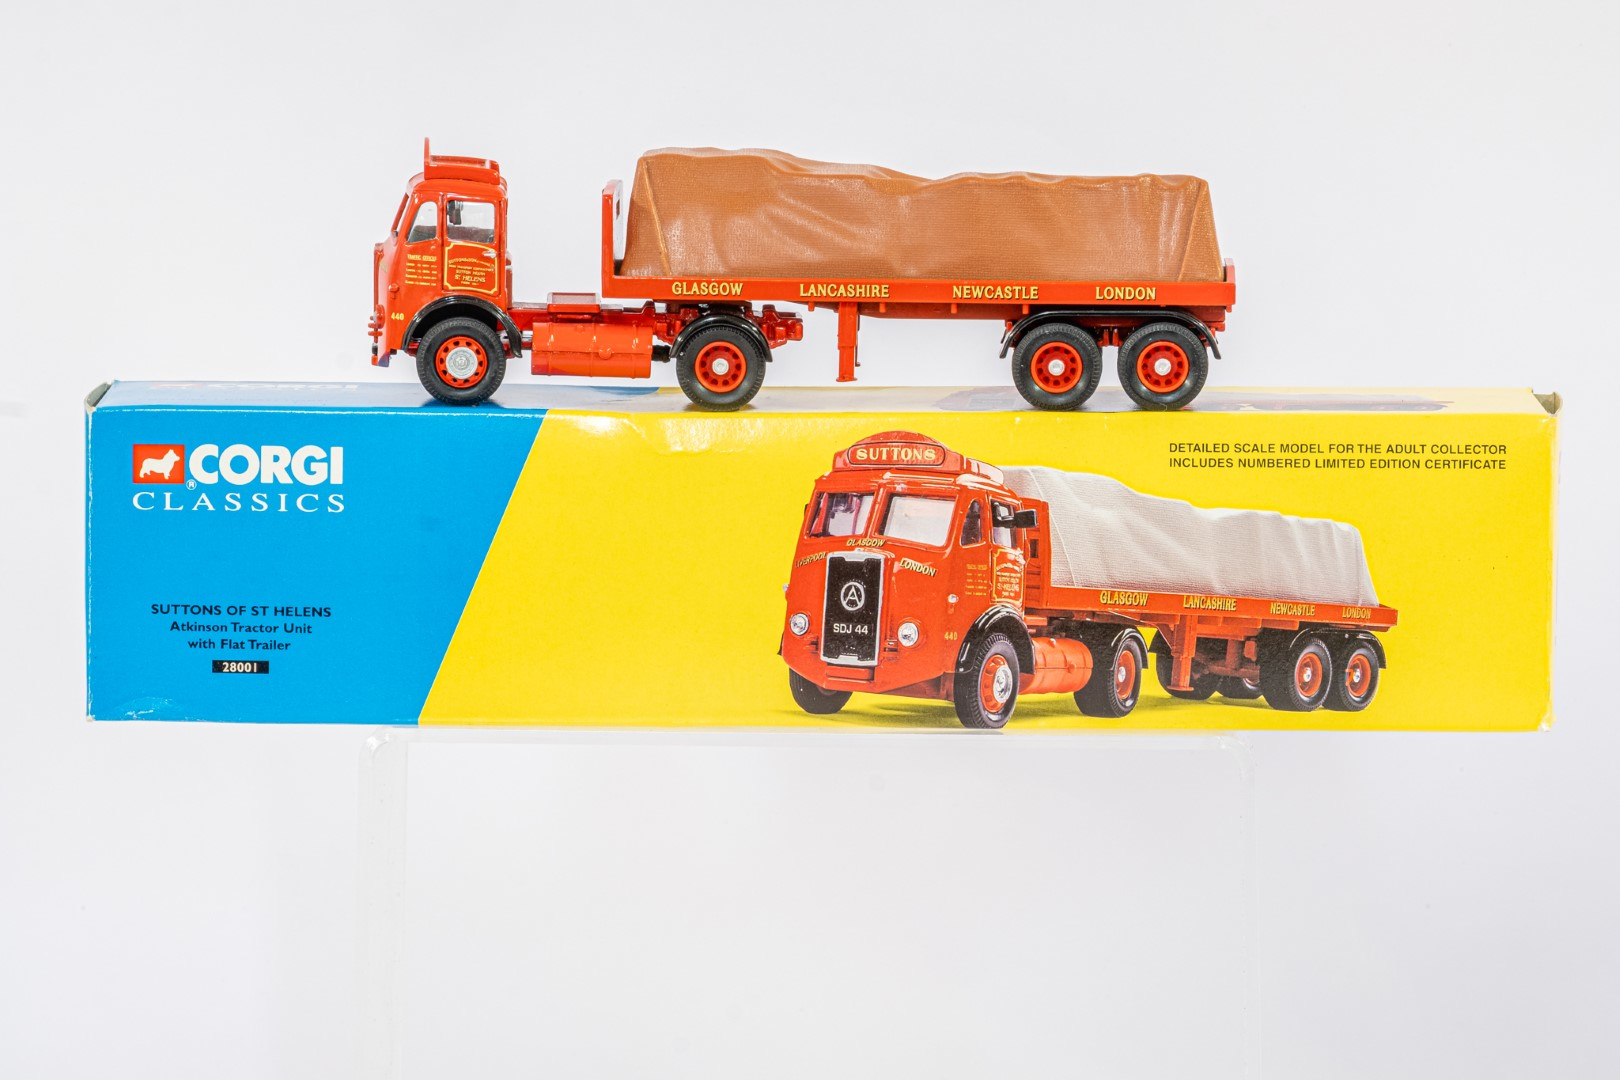 Corgi Atkinson Tractor Unit With Flatbed Trailer - Suttons Of ST Helens -